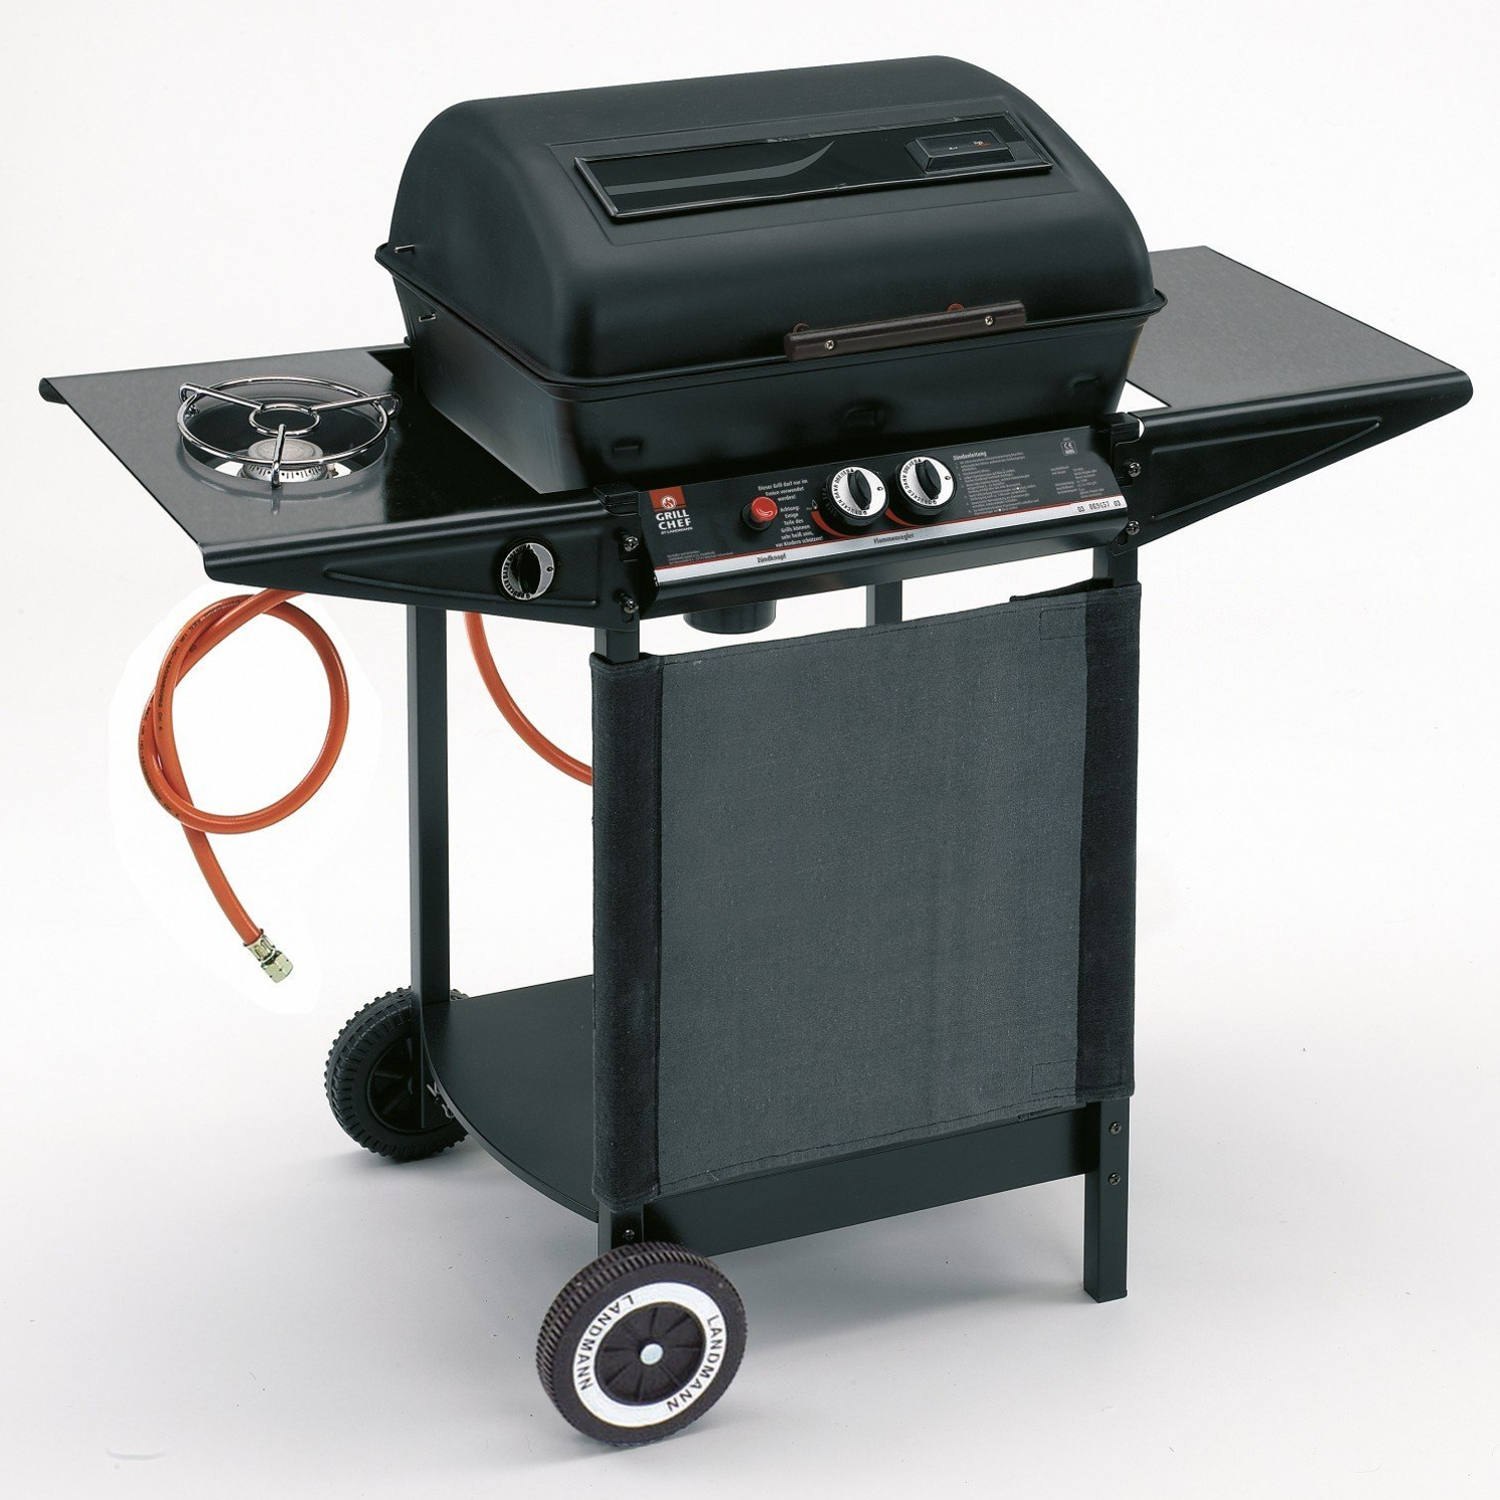 gas grill lavastein grill 6 5kw bbq grillwagen grill barbecue garten grillparty ebay. Black Bedroom Furniture Sets. Home Design Ideas